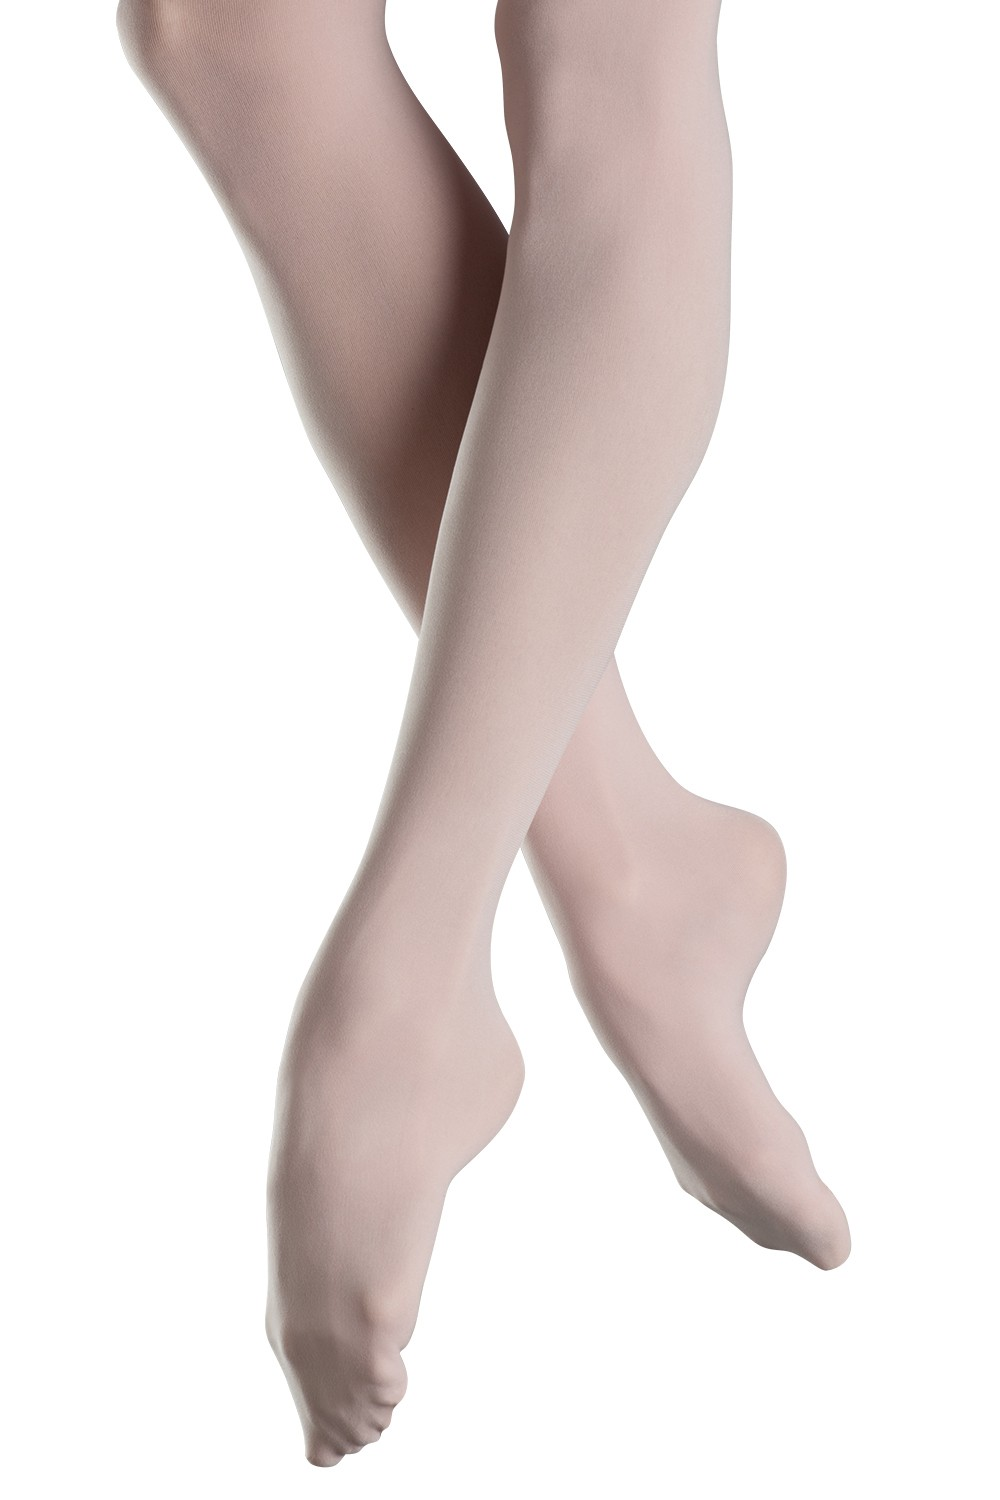 Collant Endura Hipstar - Donna Women's Dance Tights